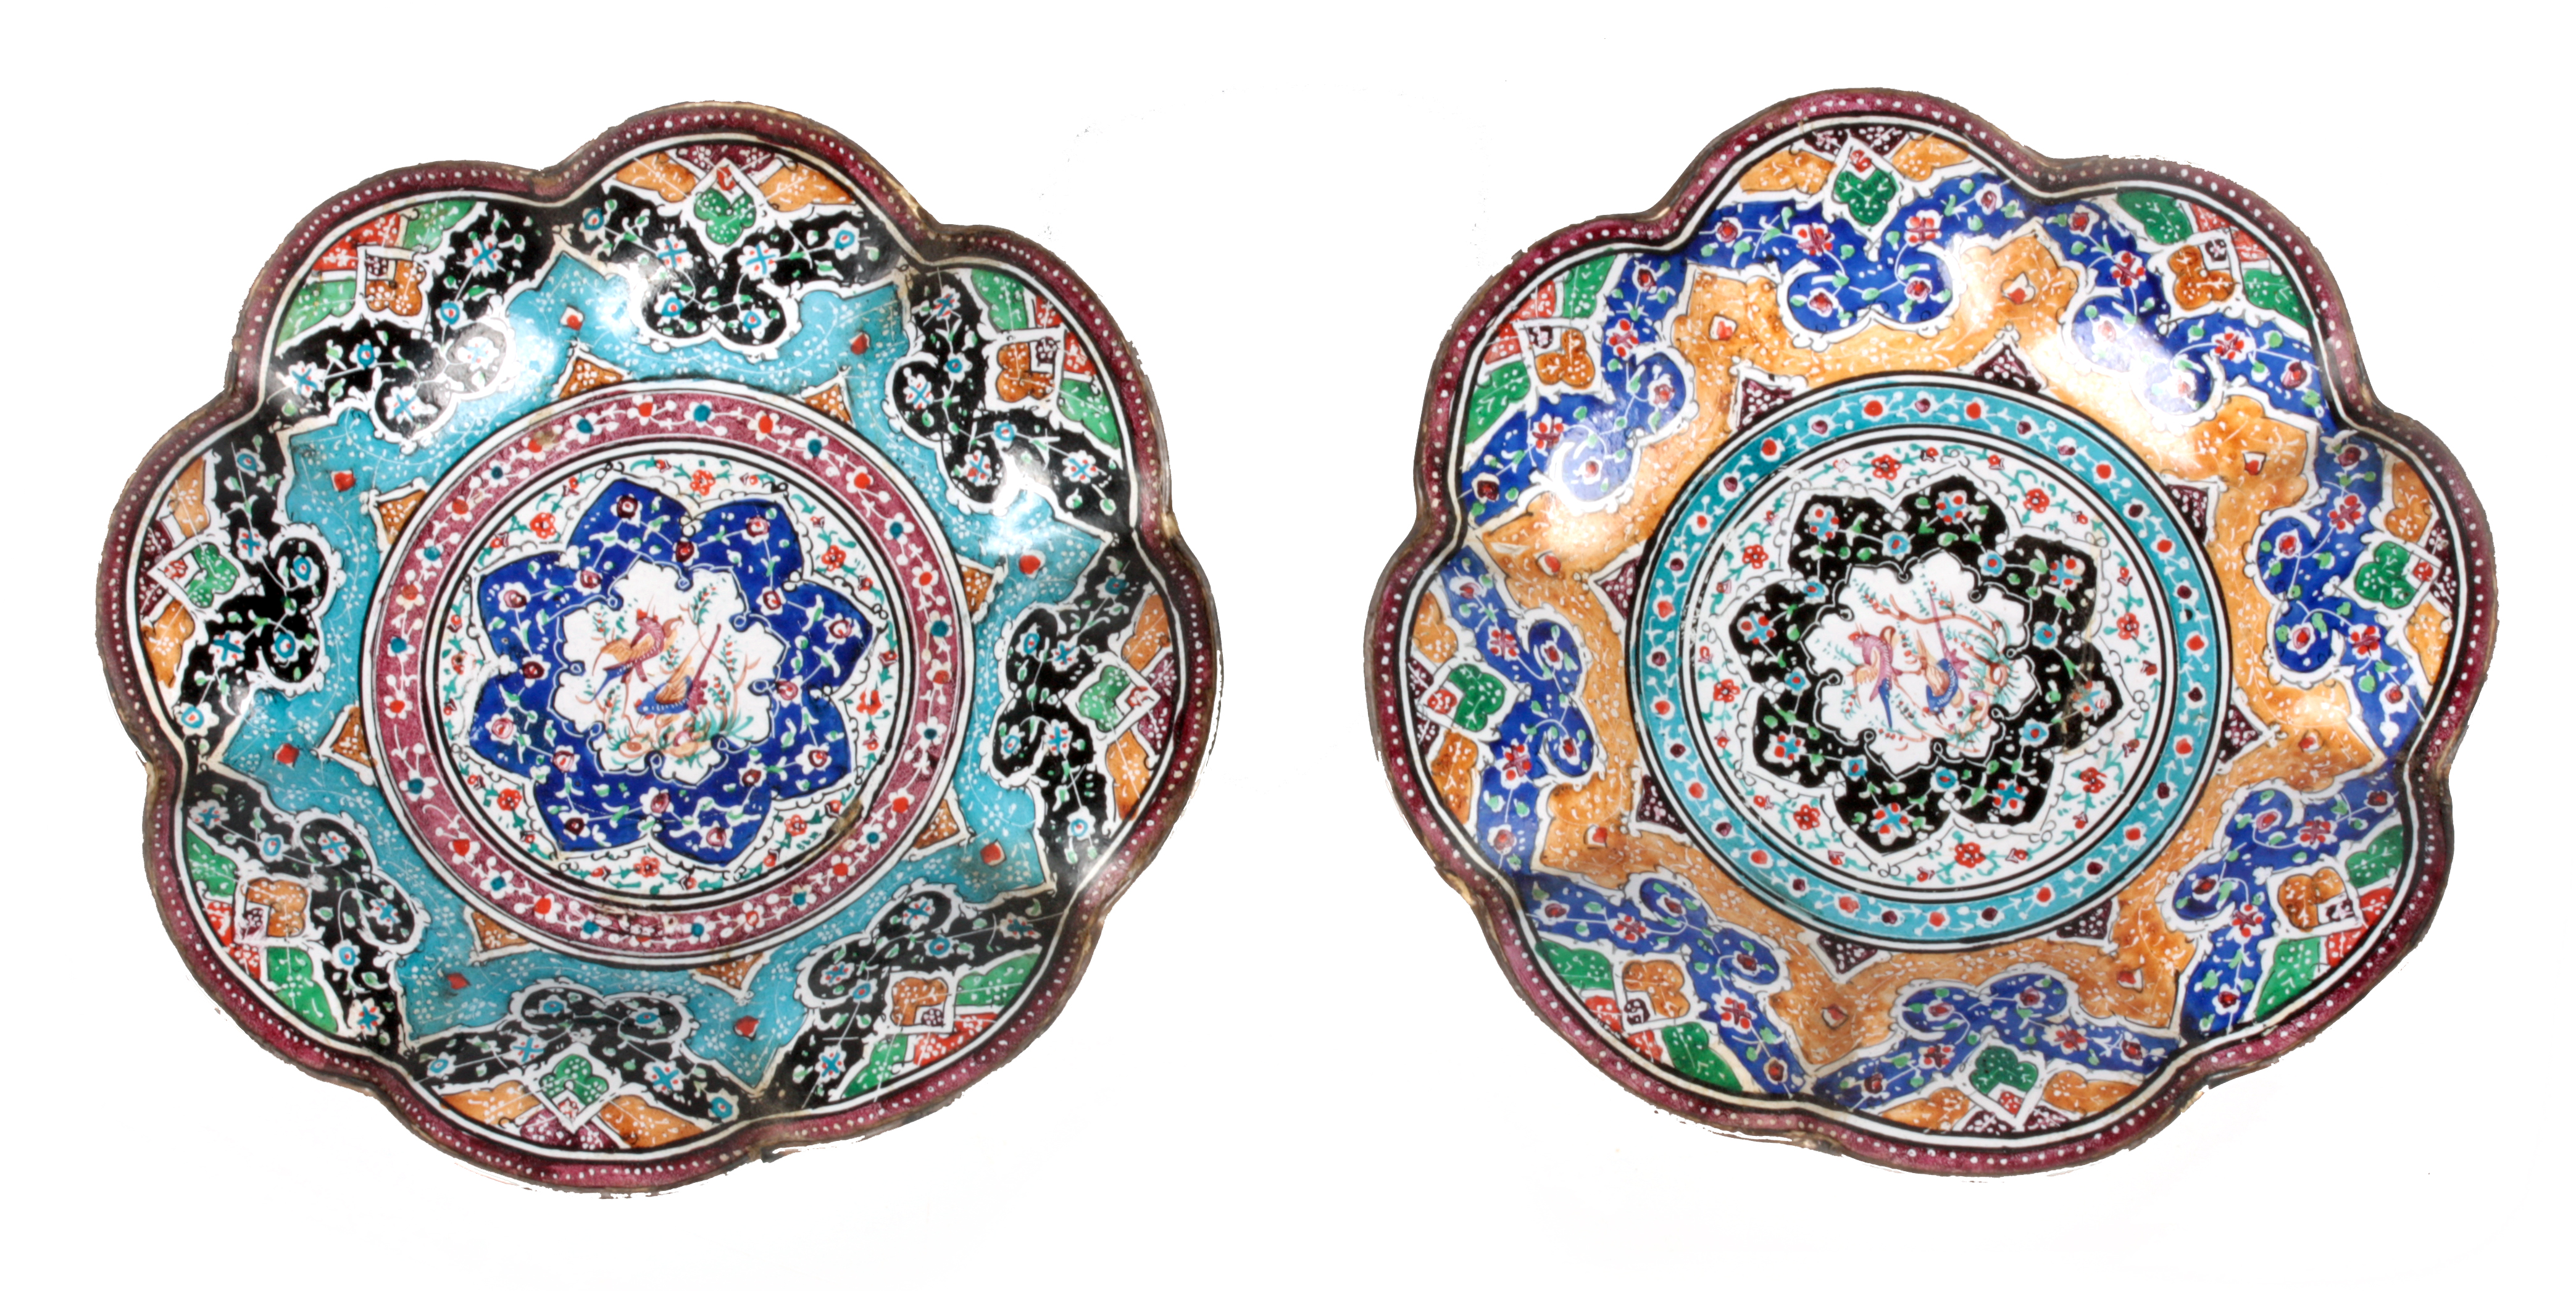 TWO 19TH CENTURY ISNIC ENAMELED DISHES having scalloped edges with birds, flowers, and geometric